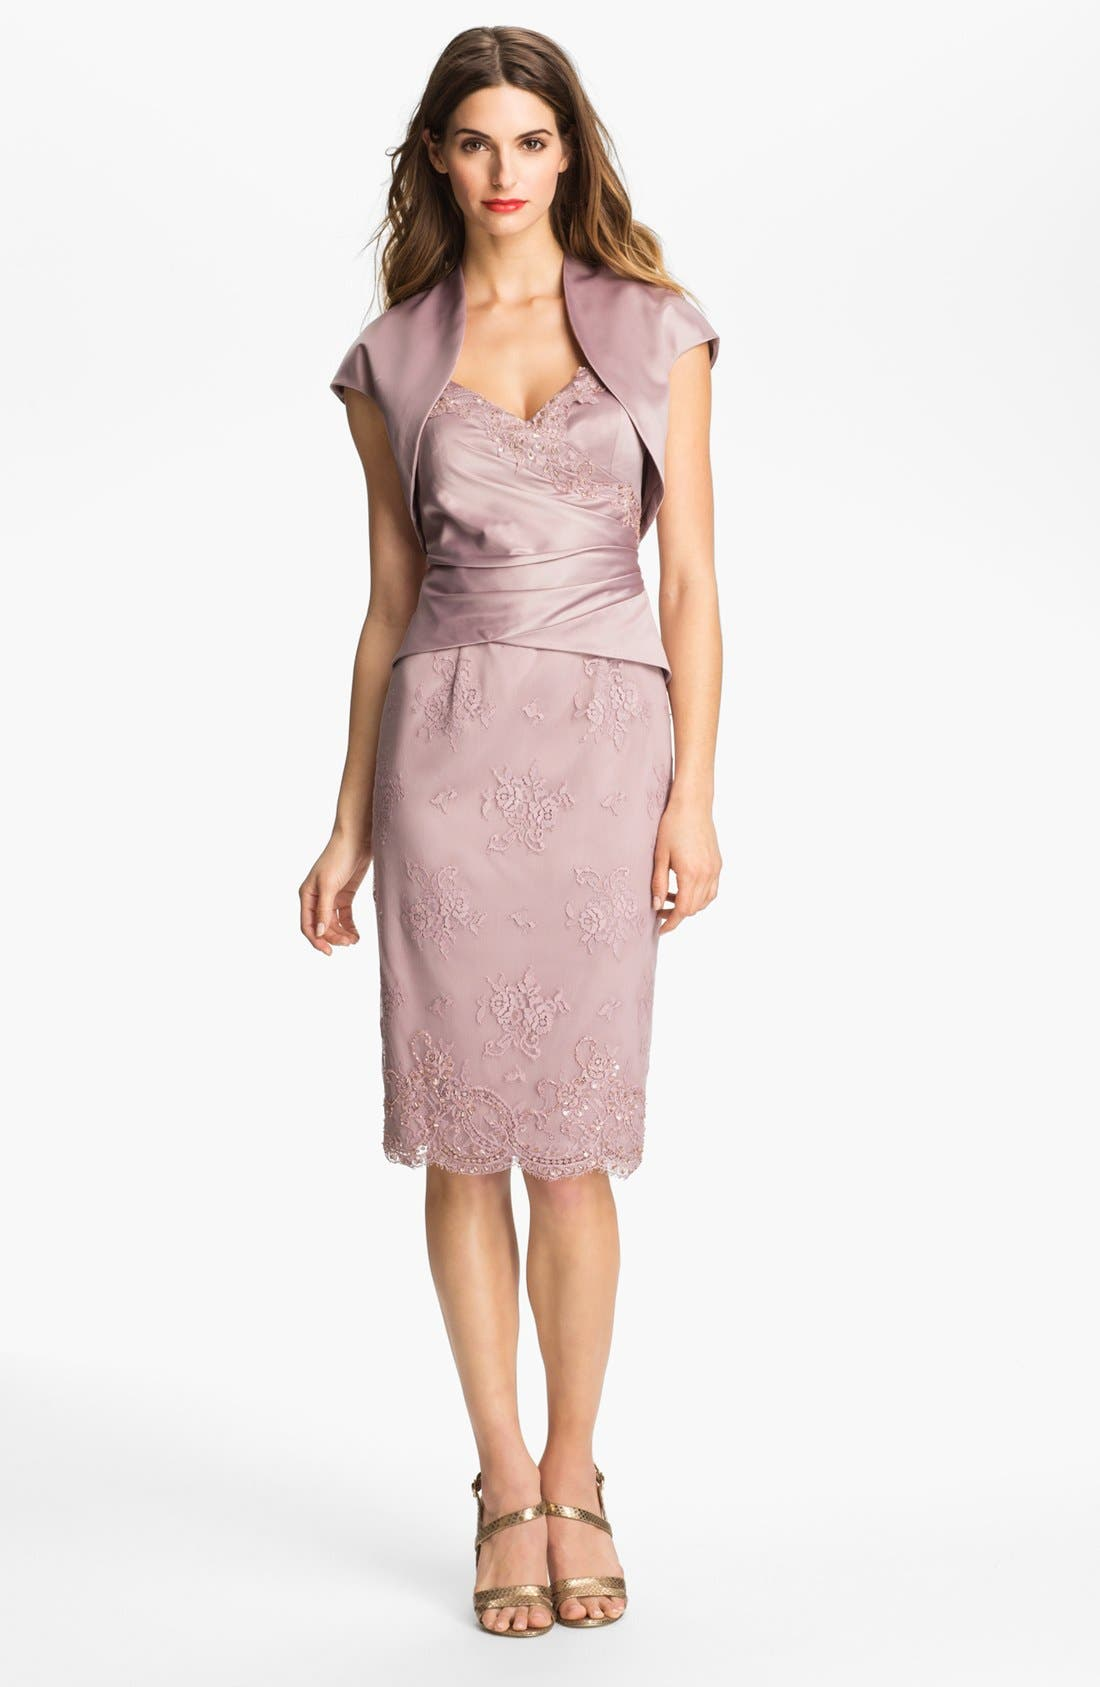 Alternate Image 1 Selected - Adrianna Papell Embellished Satin Dress & Bolero (Petite)